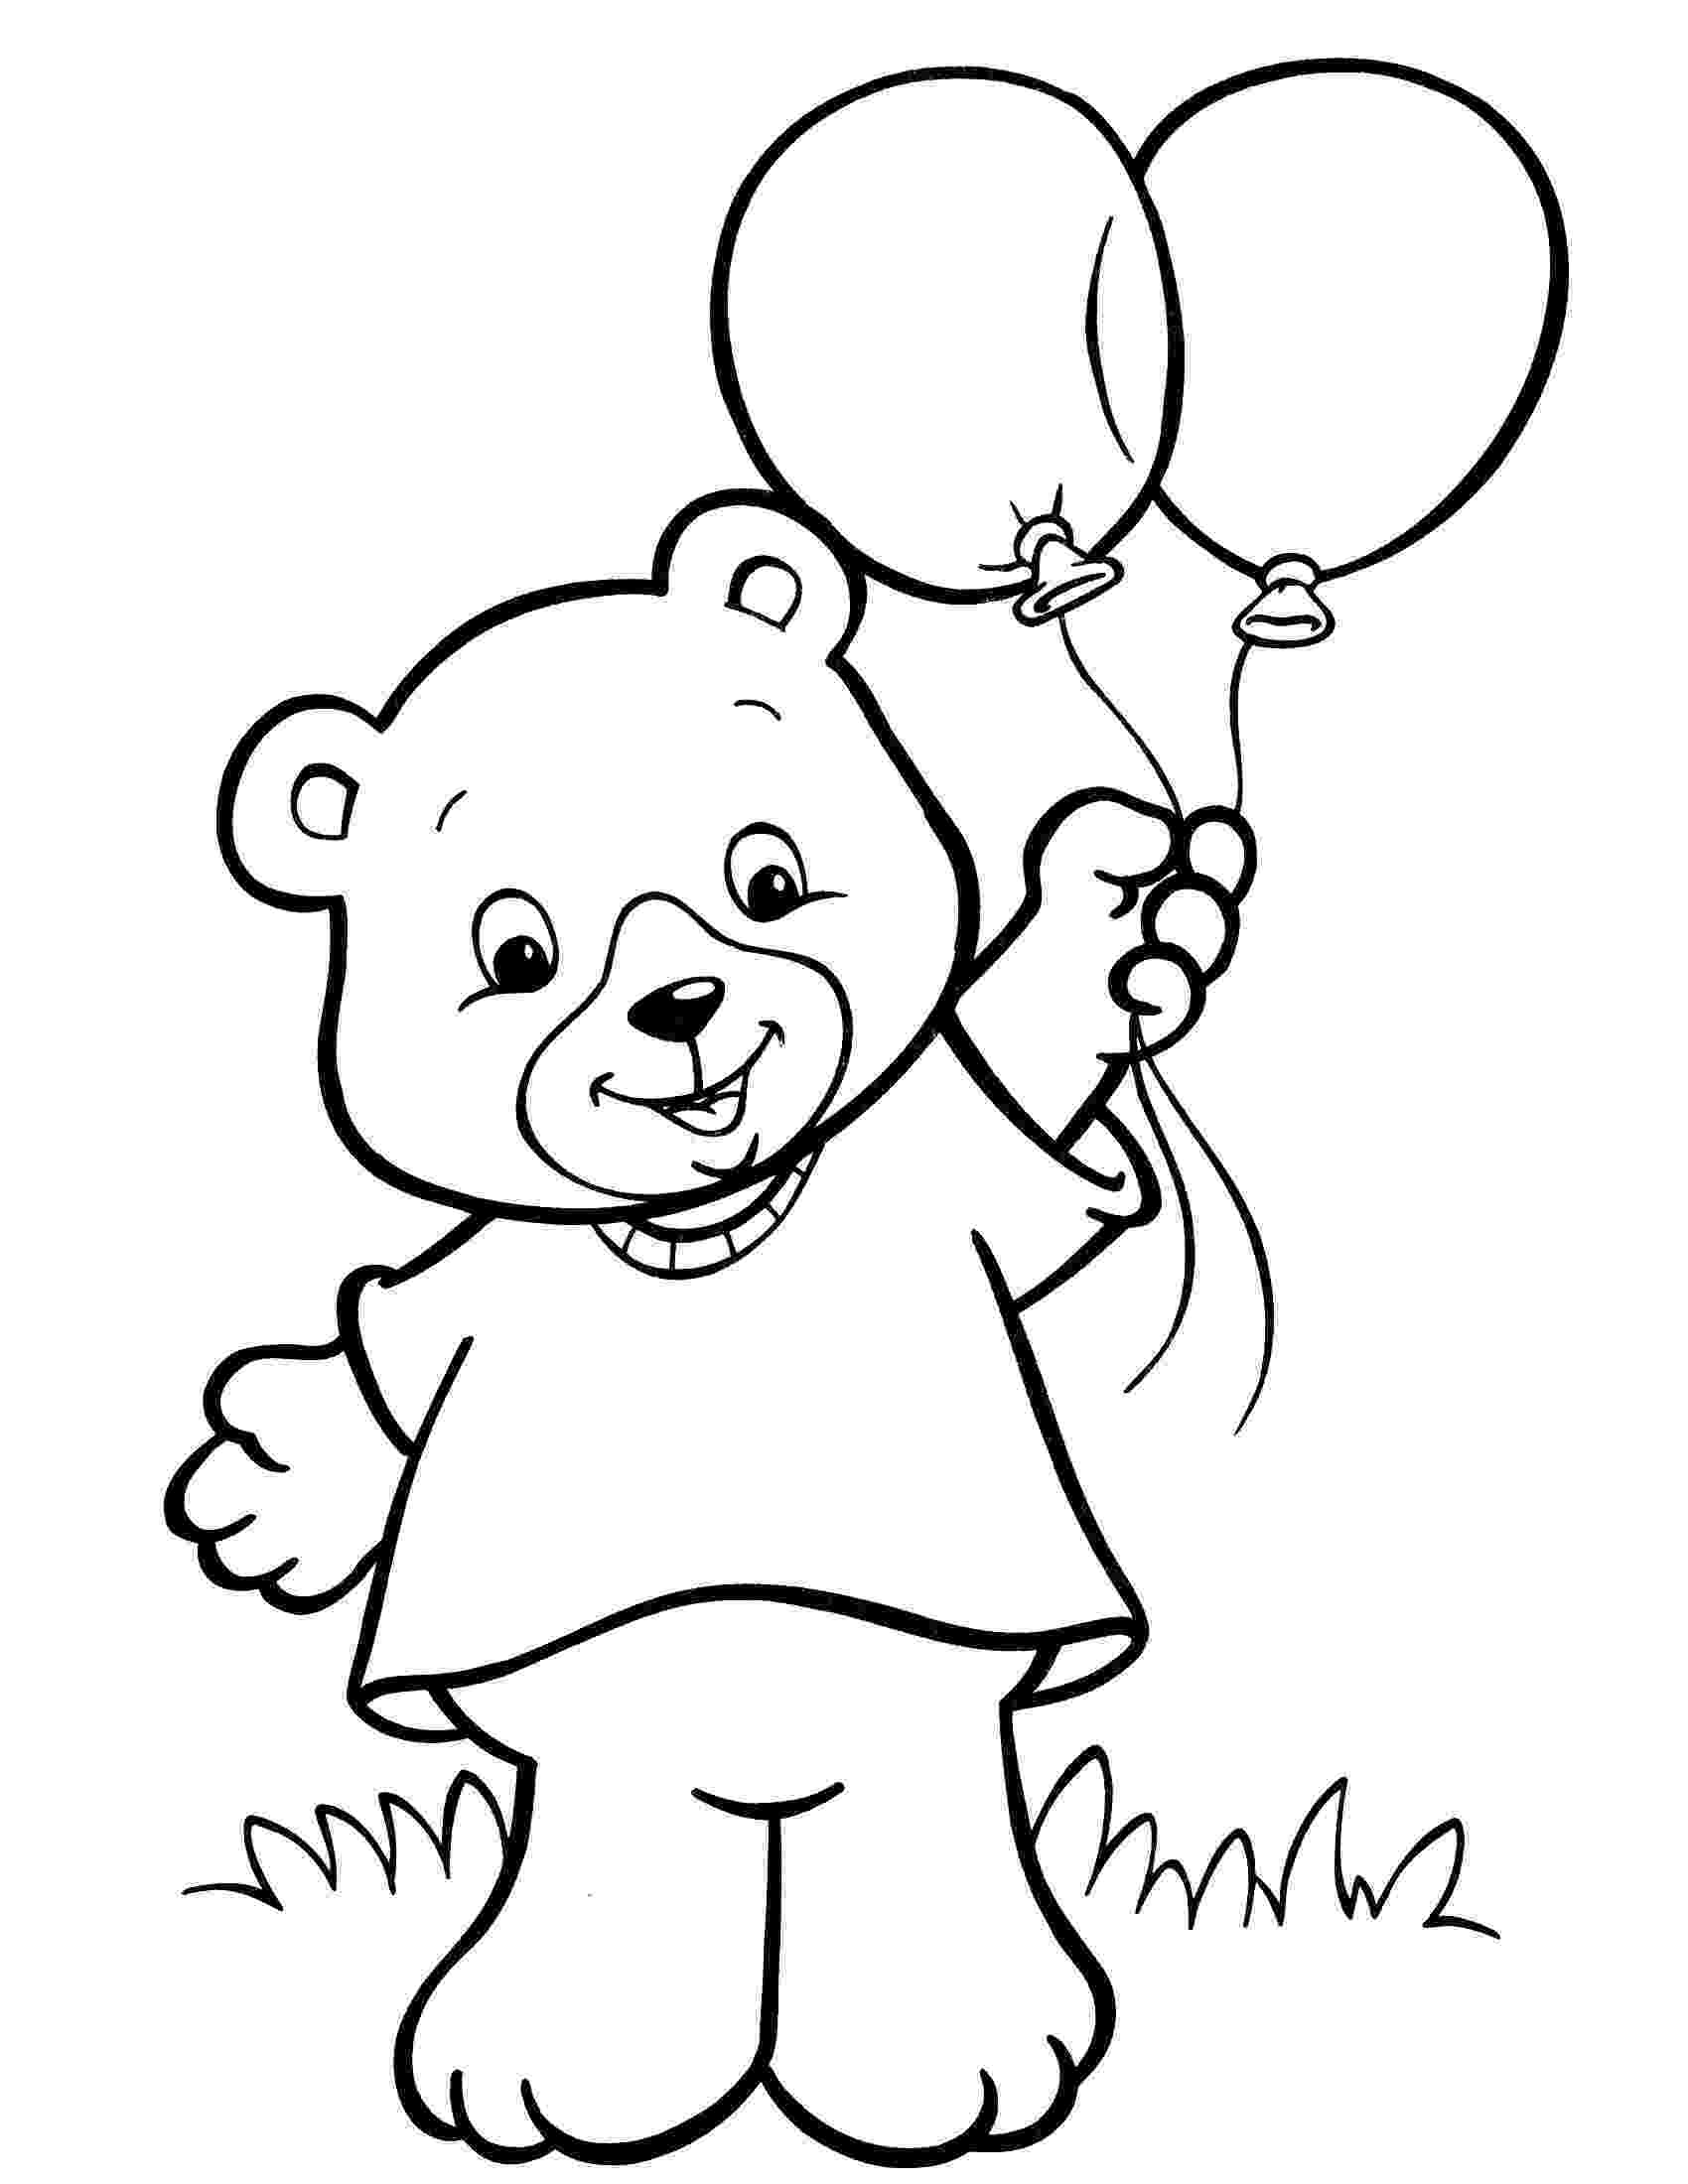 colouring sheet for 4 year olds coloring pages for 4 year olds coloring home colouring year 4 for sheet olds